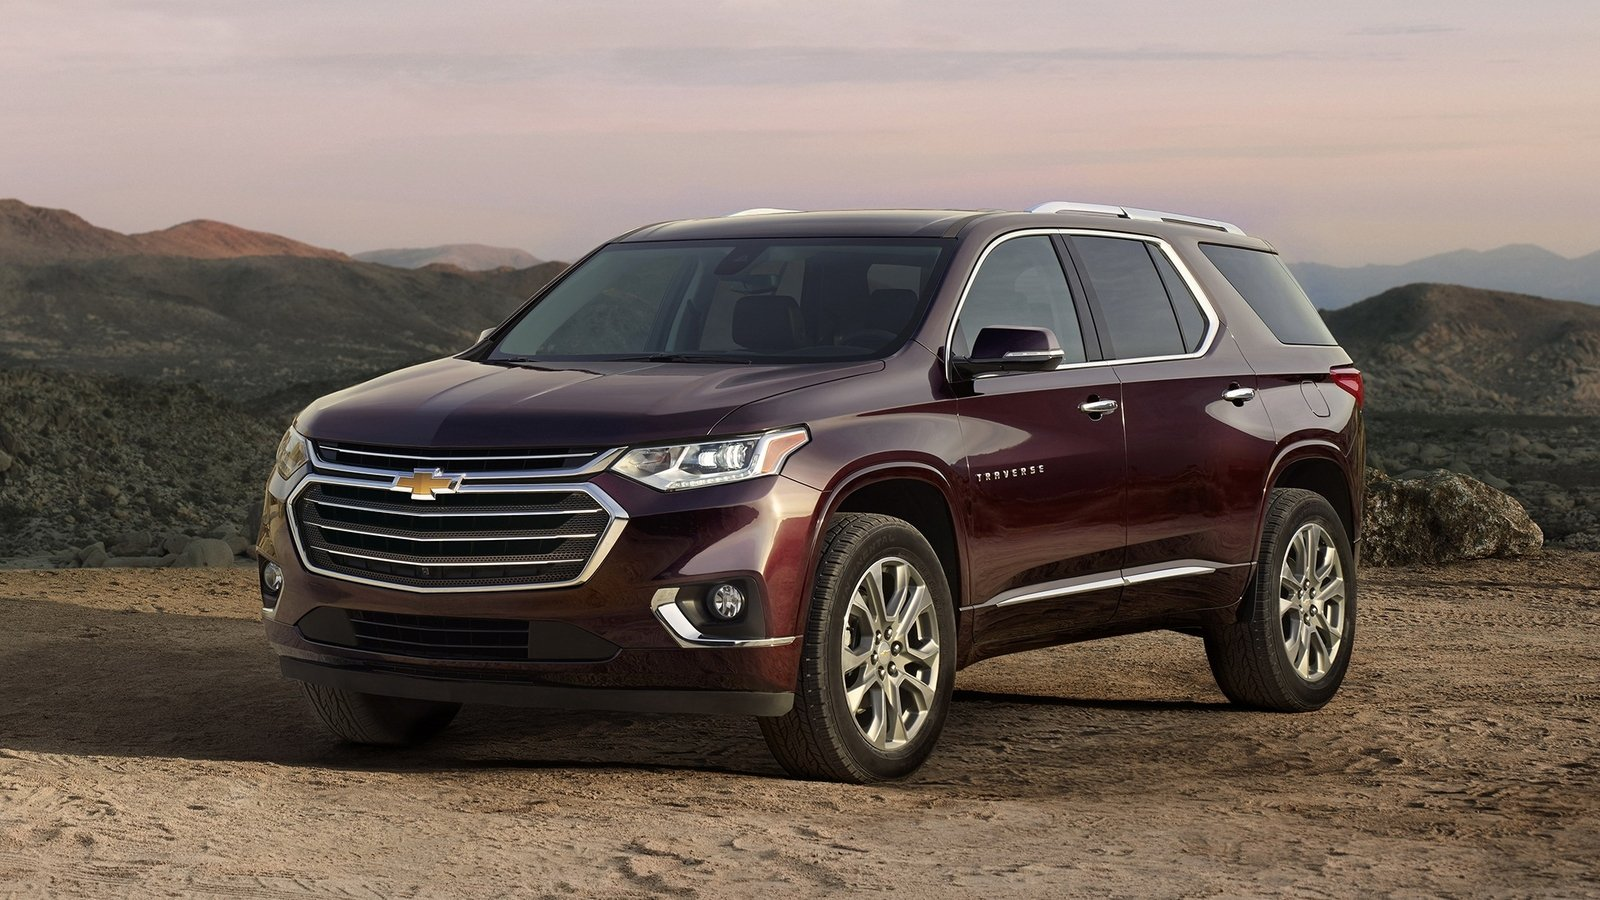 2018 Chevy Traverse Goes Upscale In All-New Generation News - Top ...